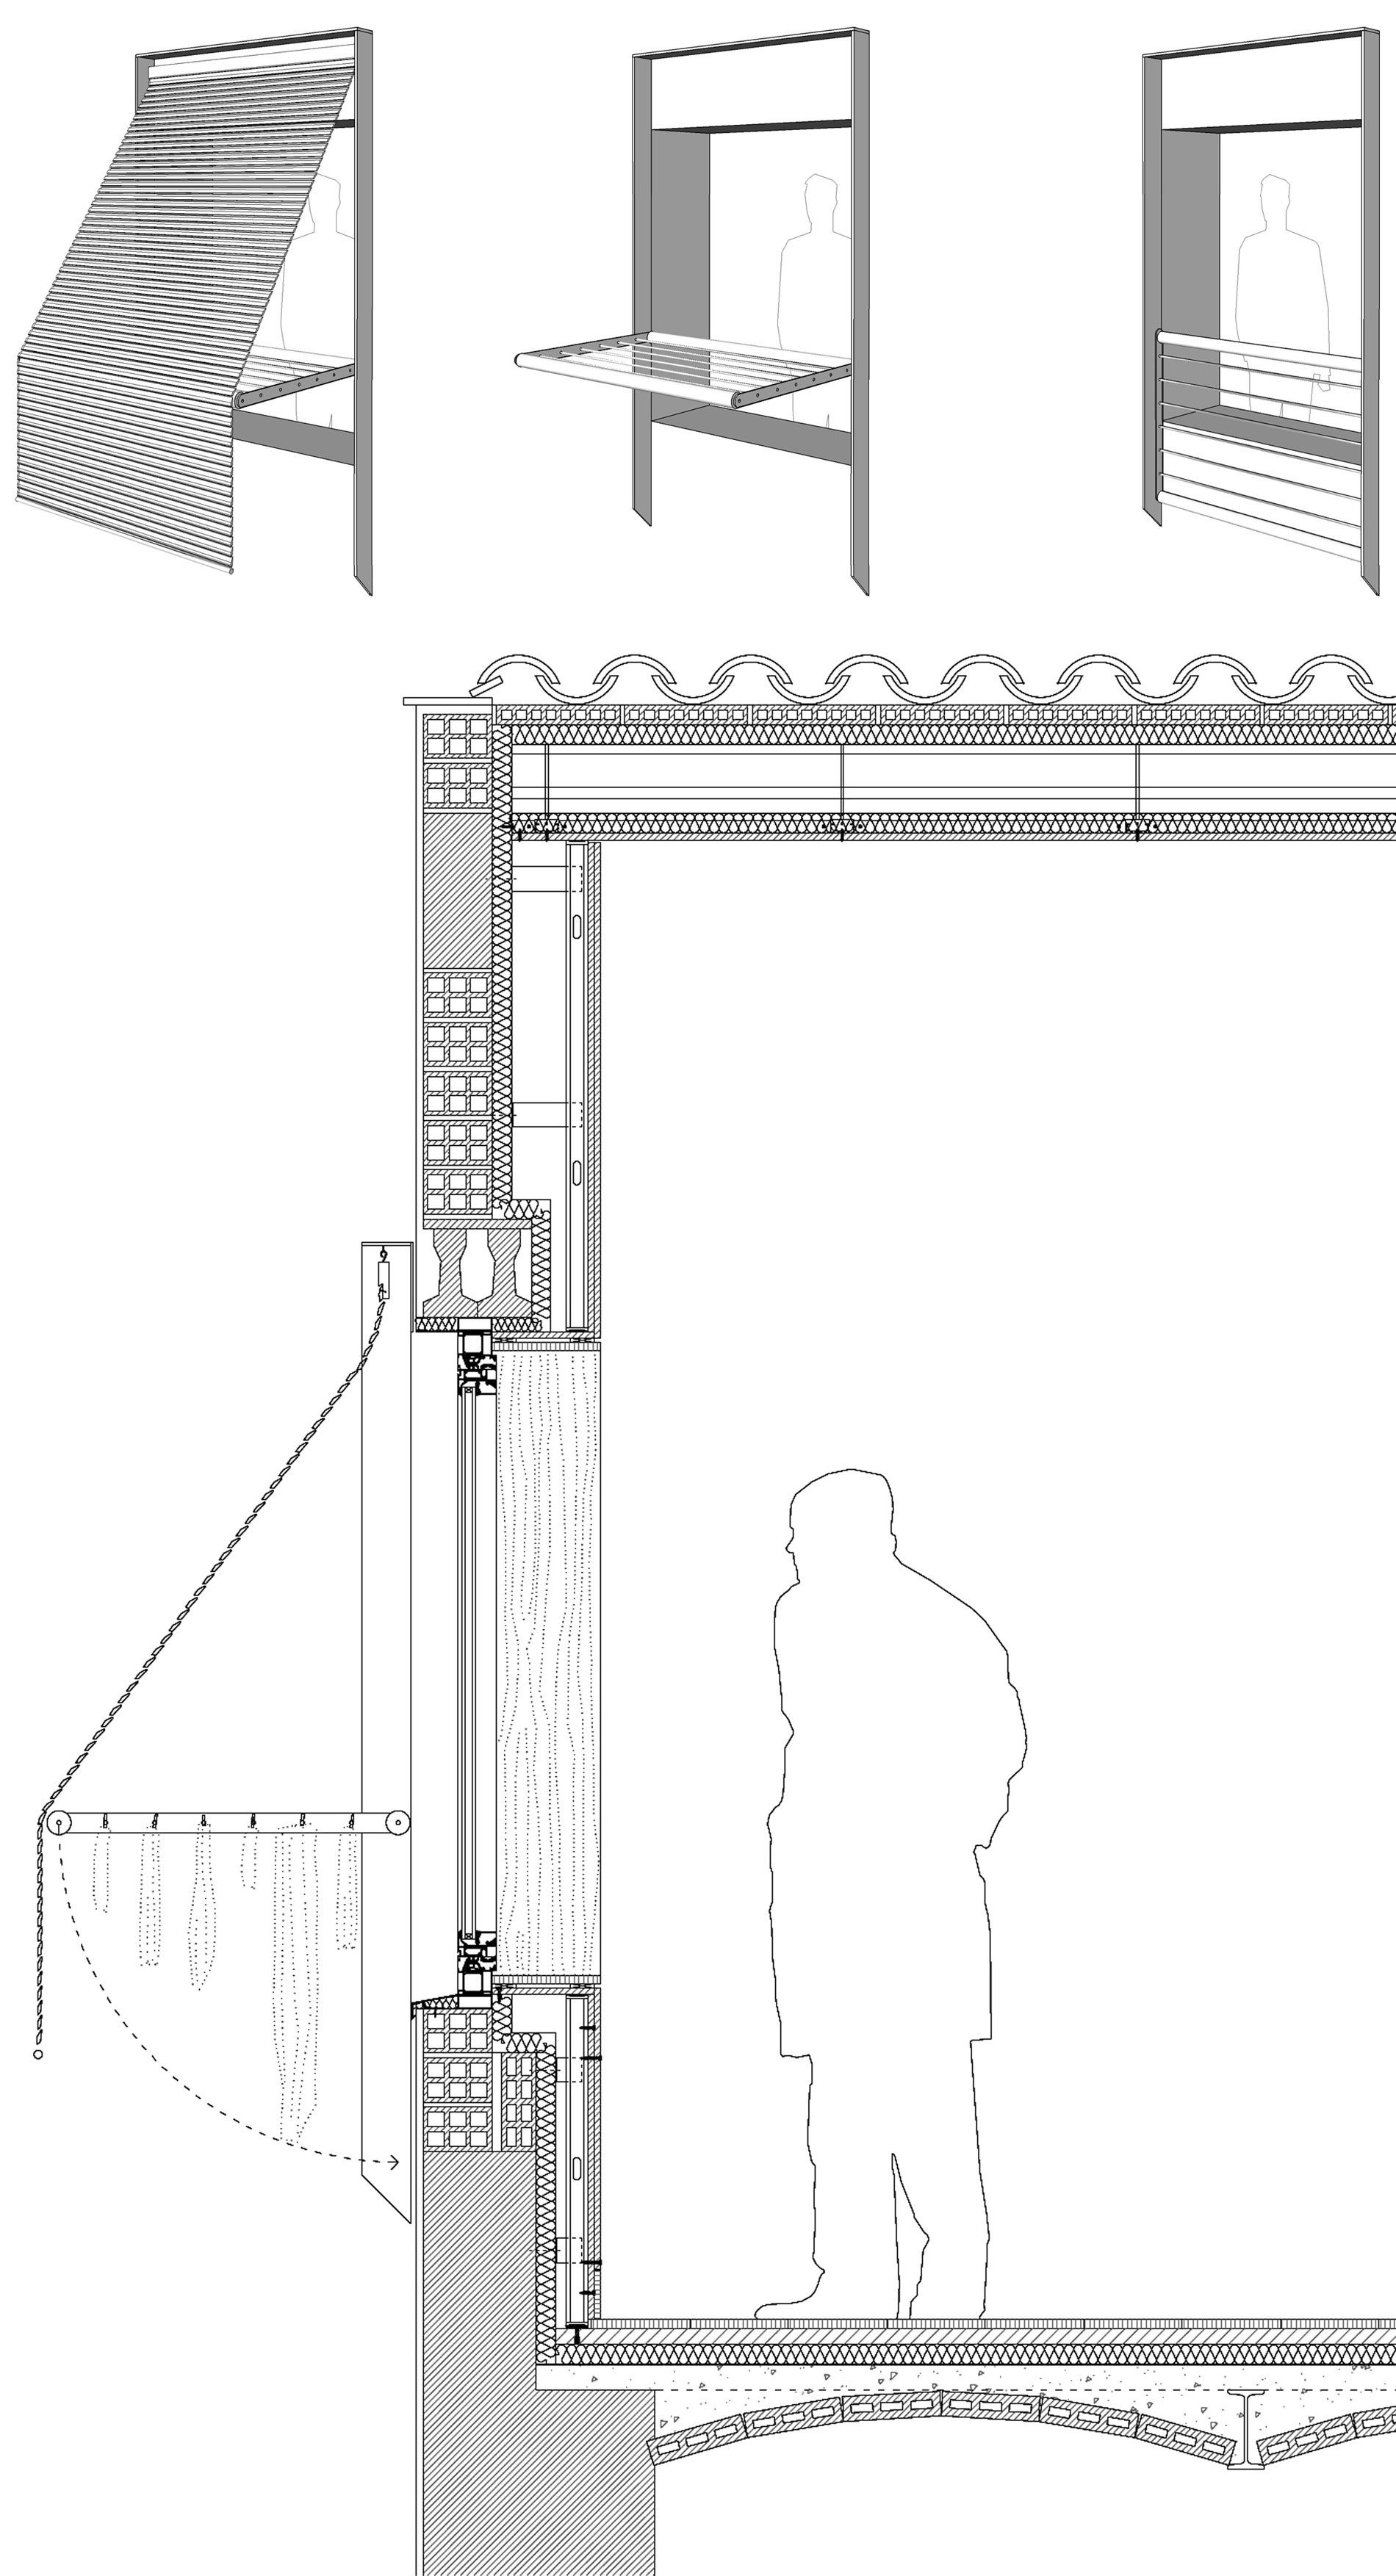 Railing Clothes Line And Roller Blind Separation In One